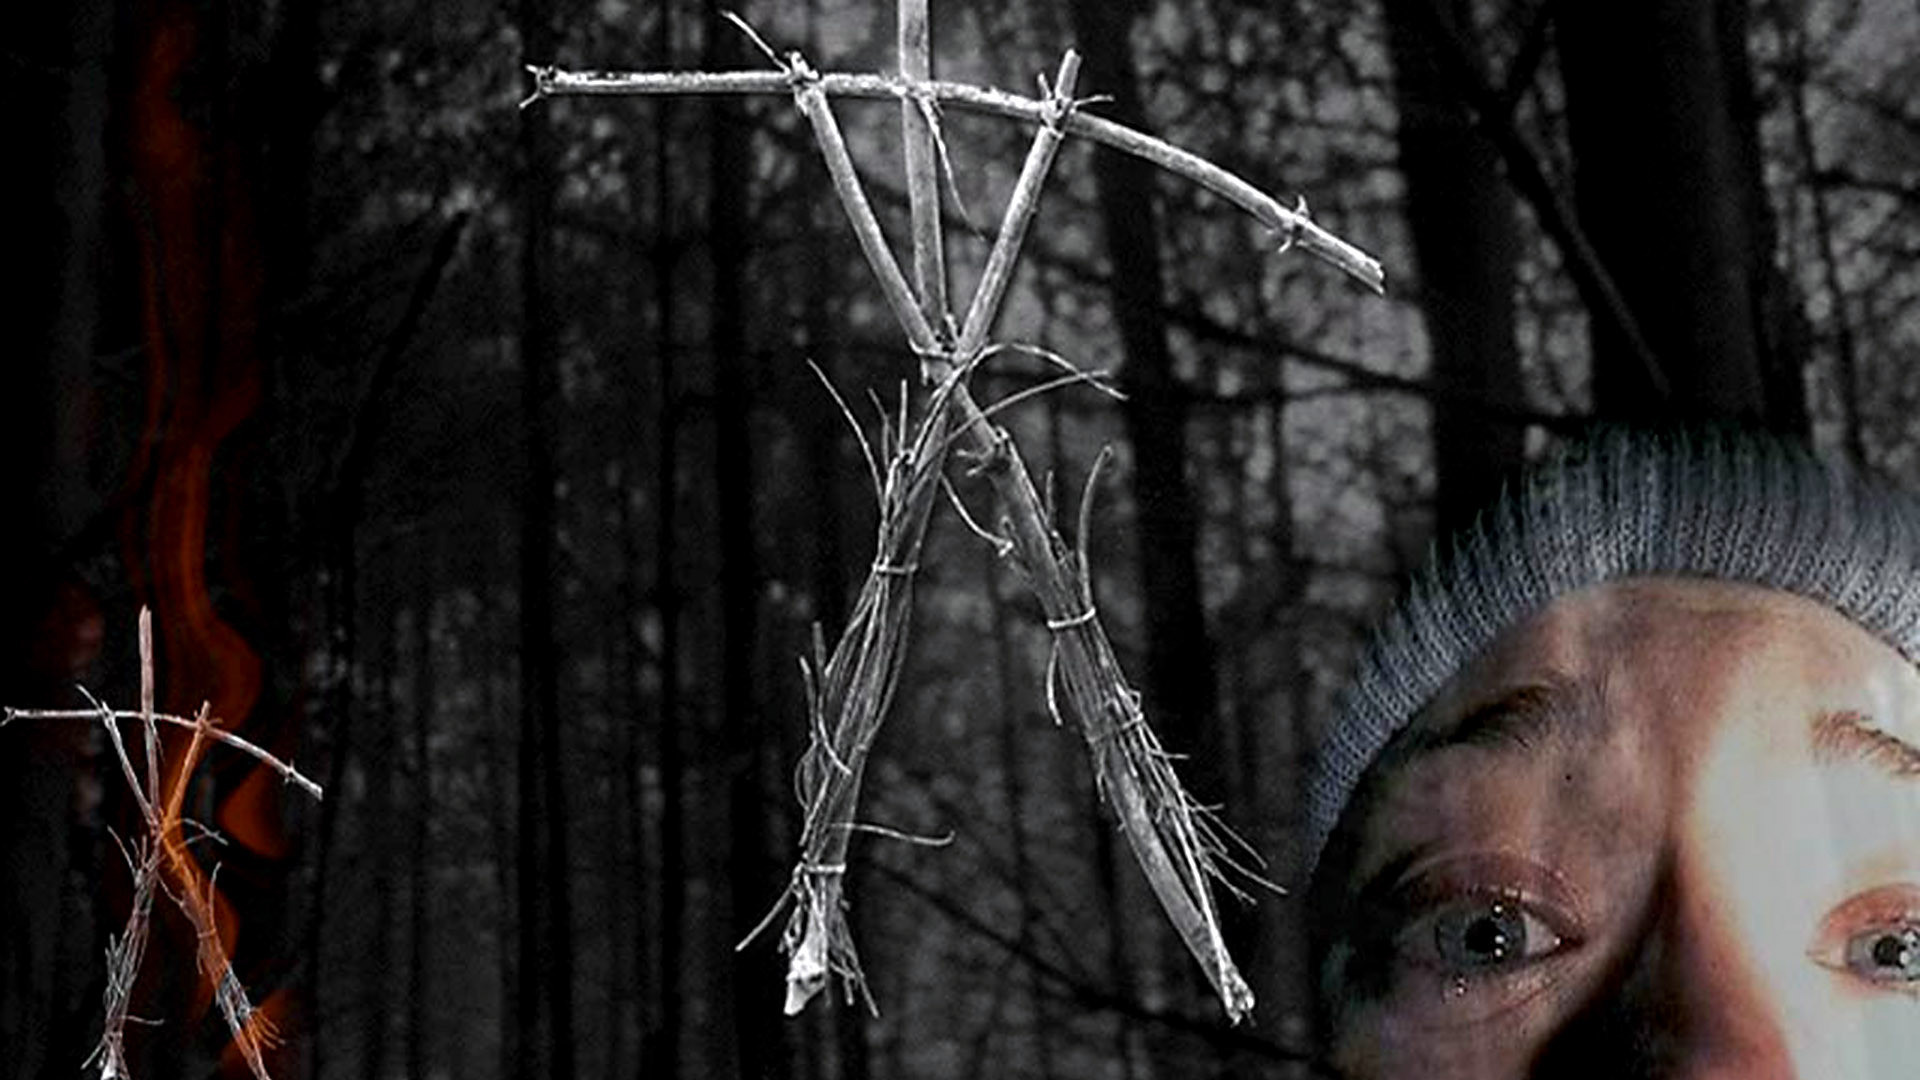 an analysis of the movie blair witch project Finally, the horrifying blair witch of the black hills is back to instill nightmares in us all and squash any dreams of a future camping trip at san diego comic-con.